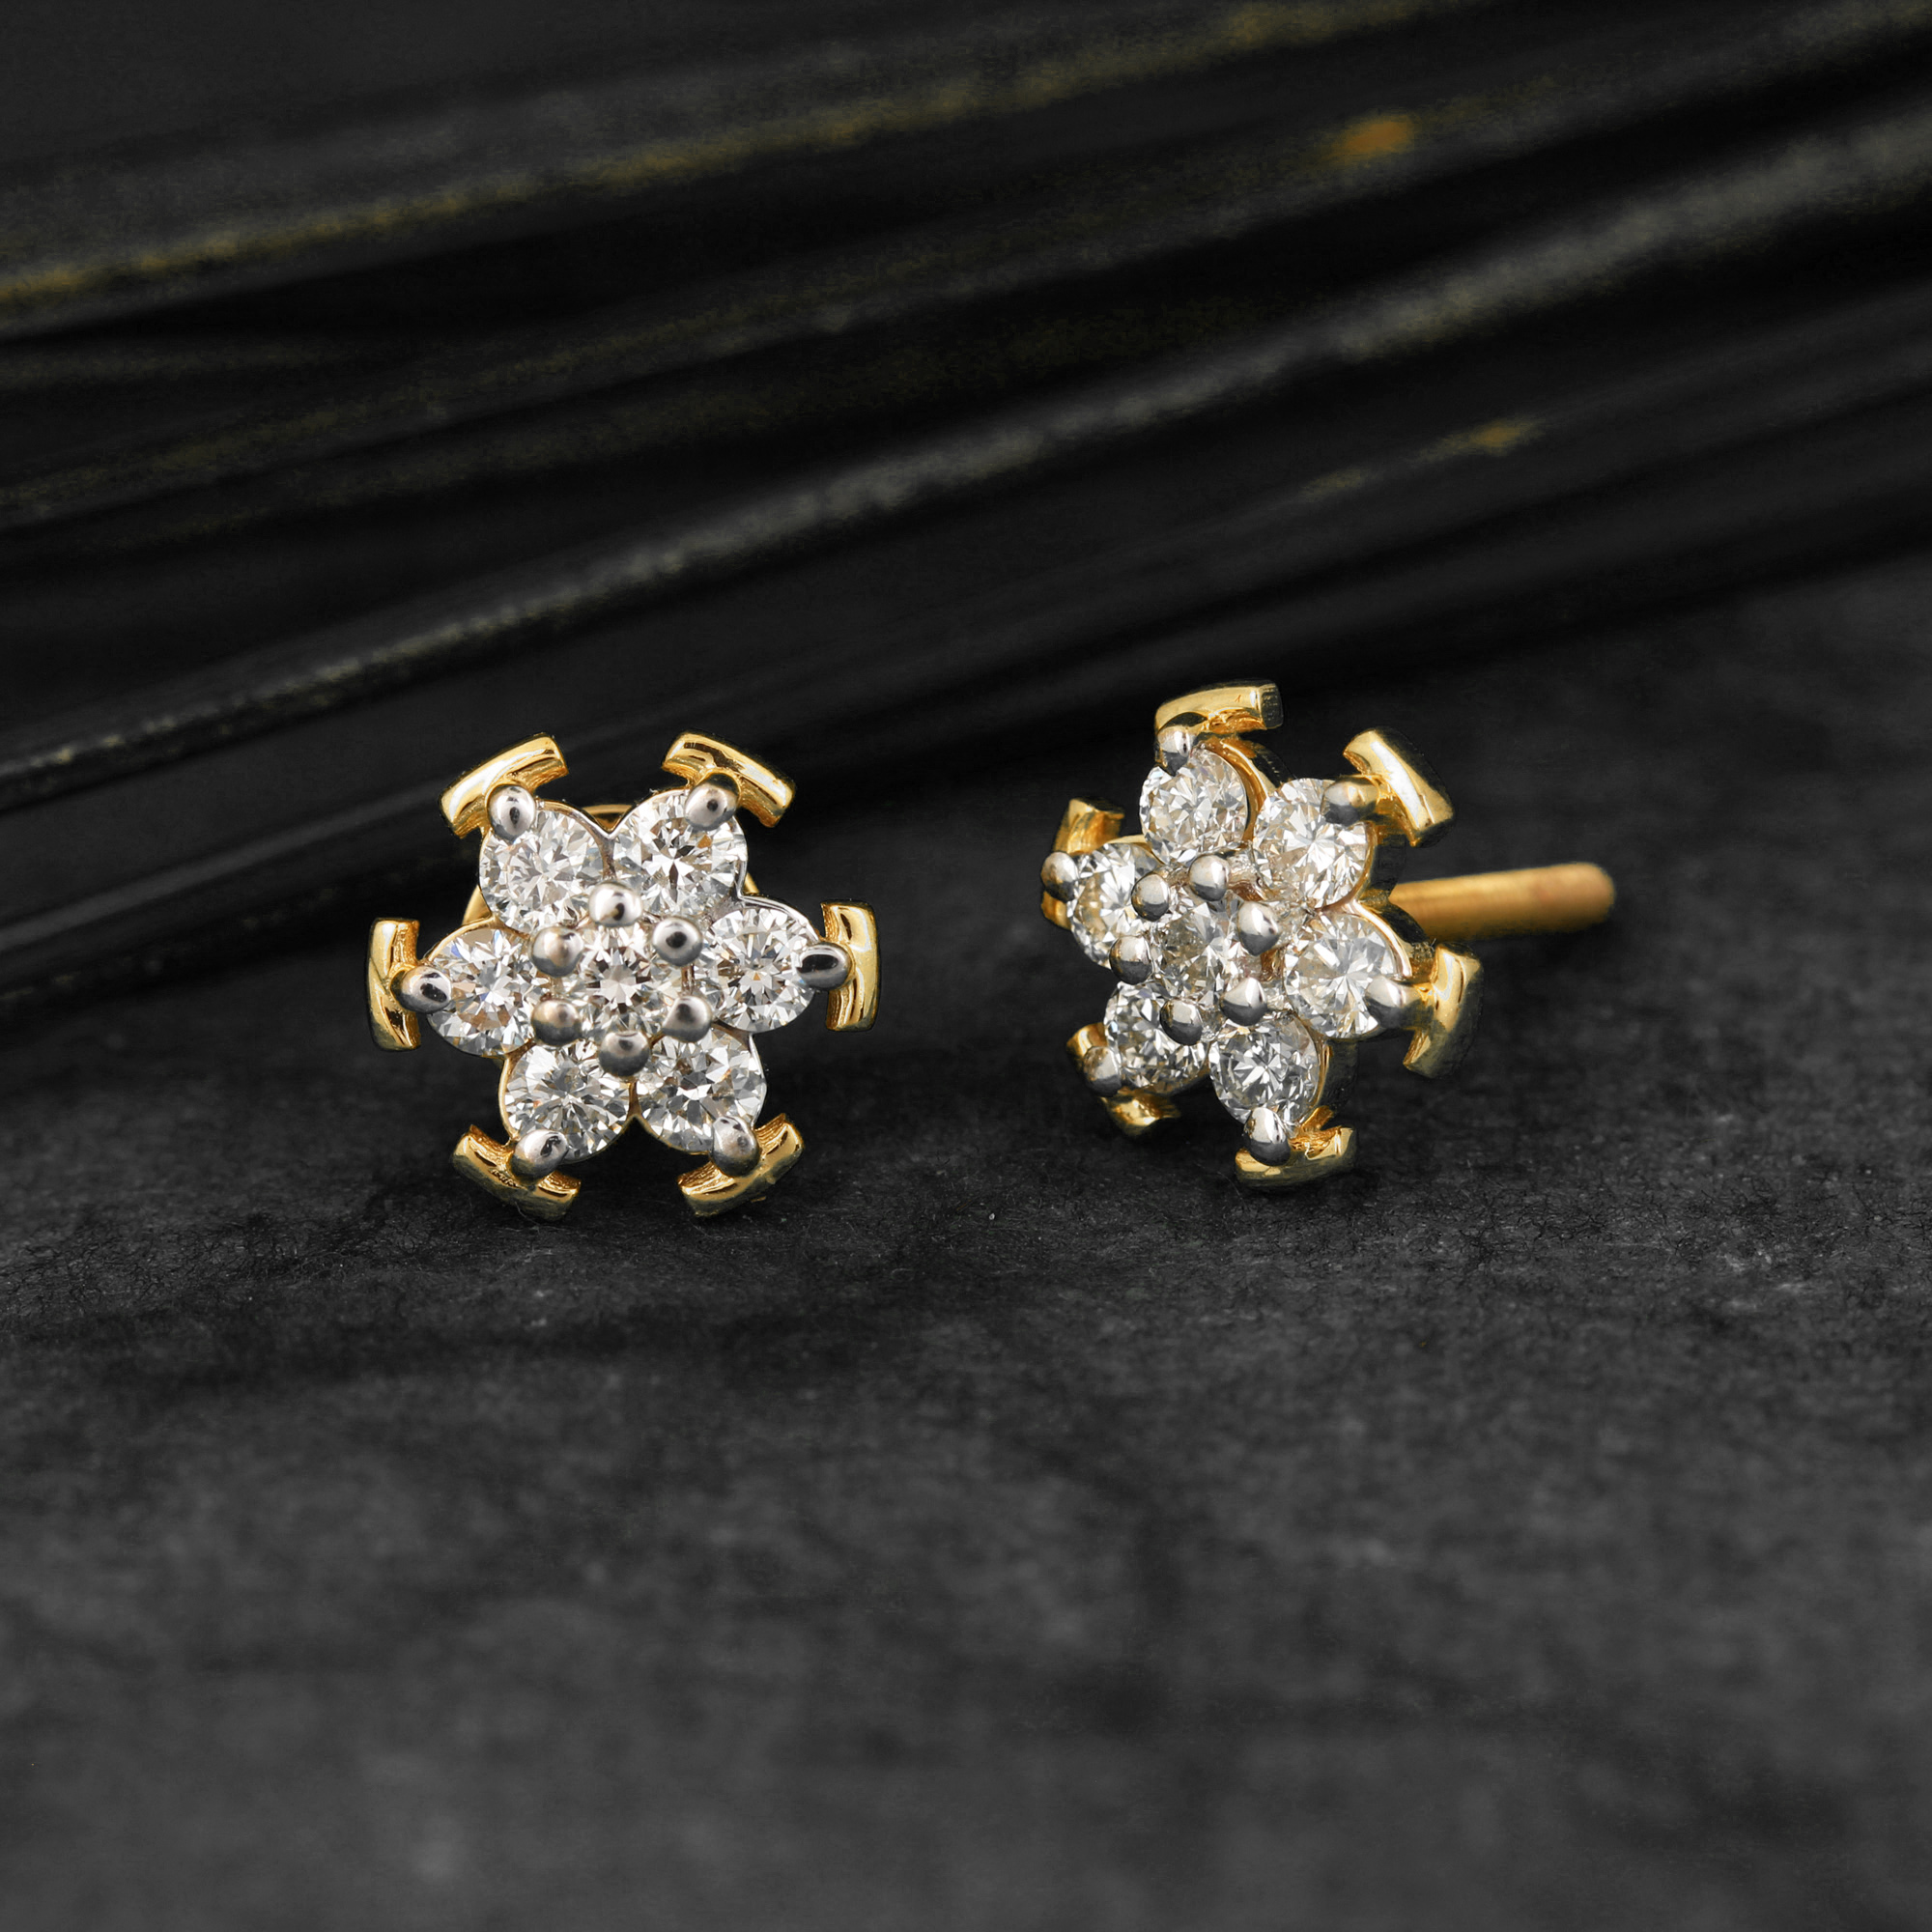 Attractive Earring In Gold with Diamonds